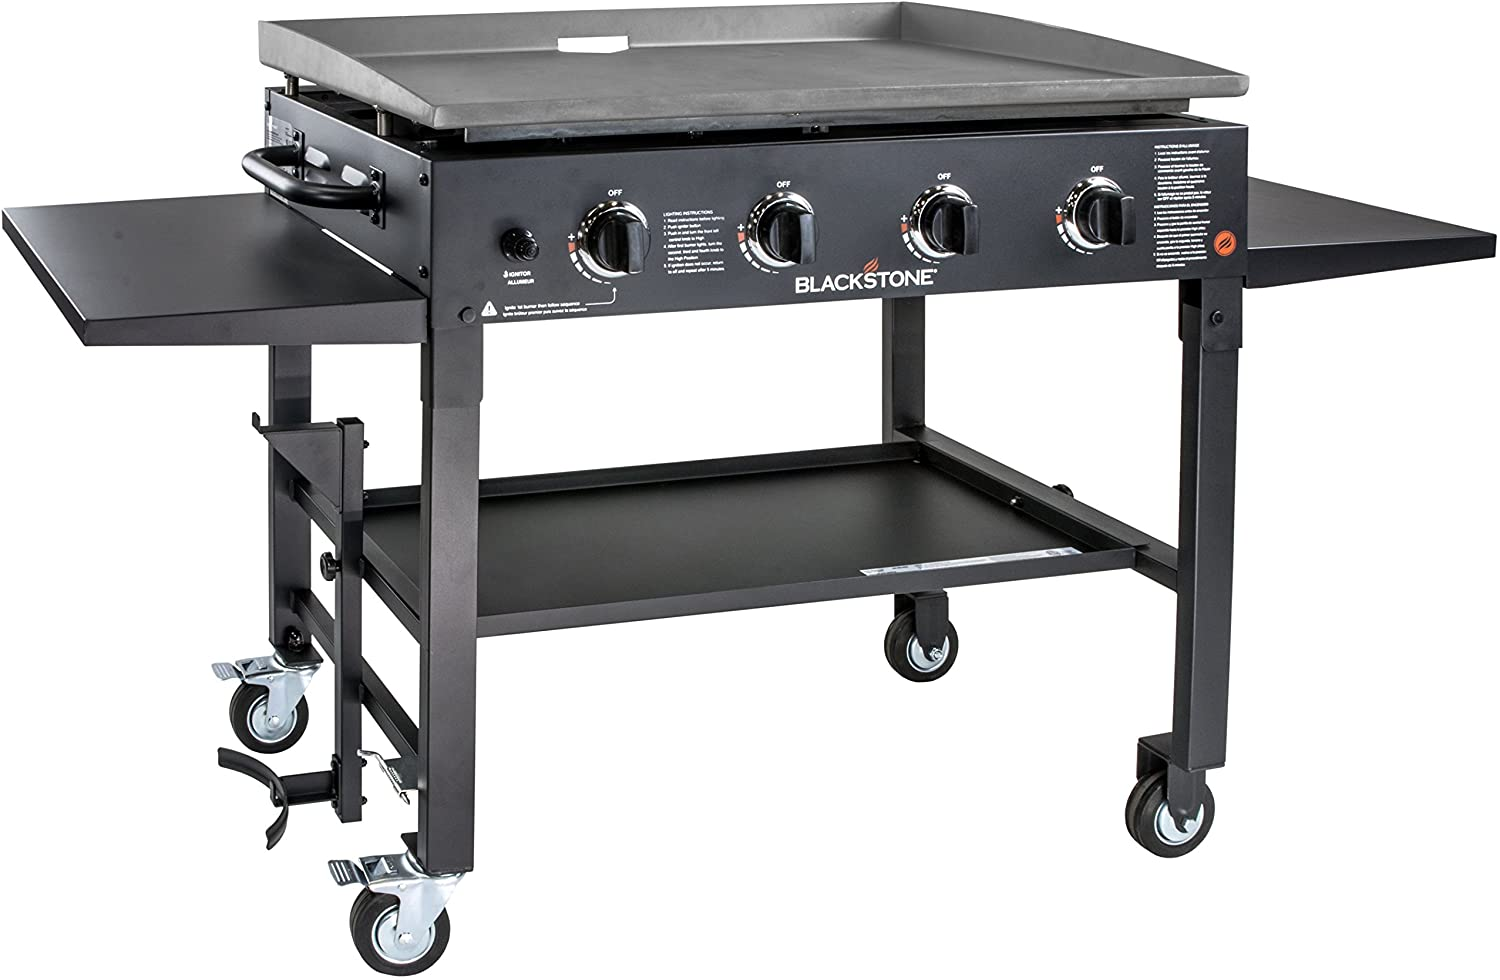 Amazon Com Blackstone 1554 Cooking 4 Burner Flat Top Gas Grill Propane Fuelled Restaurant Grade Professional 36 Outdoor Griddle Station With Side Shelf 36 Inch Black Garden Outdoor